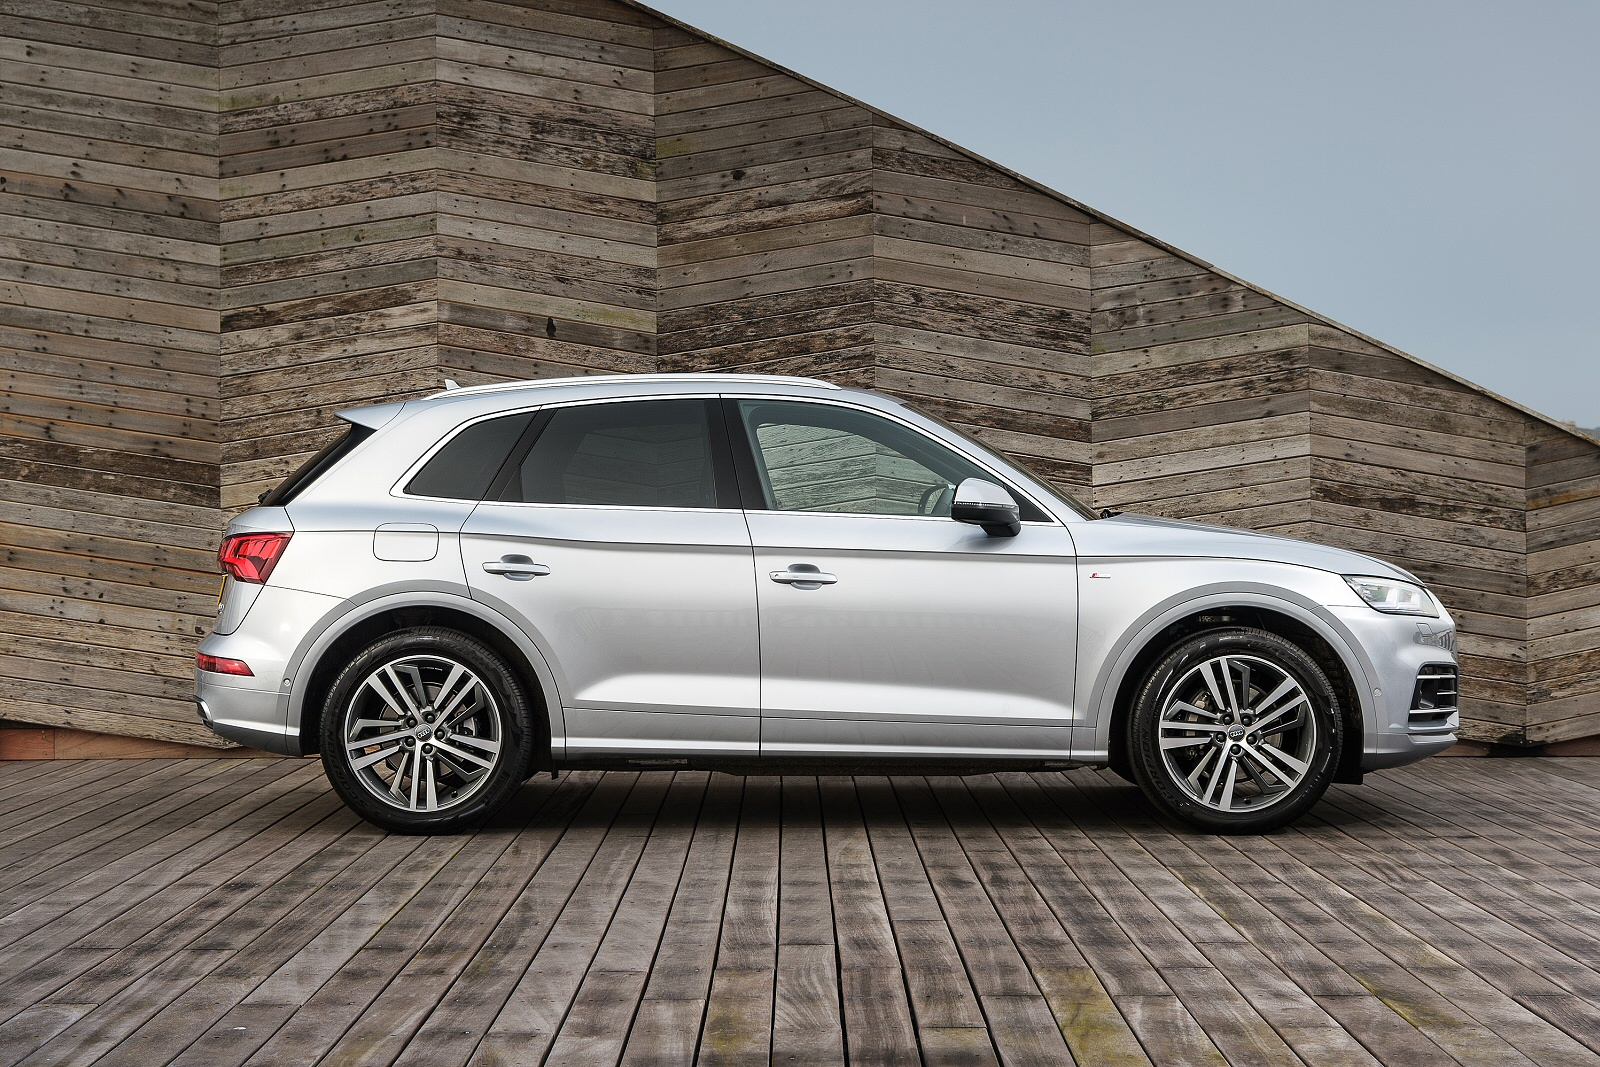 new audi q5 40 tdi quattro s line 5dr s tronic diesel estate for sale hereford audi. Black Bedroom Furniture Sets. Home Design Ideas